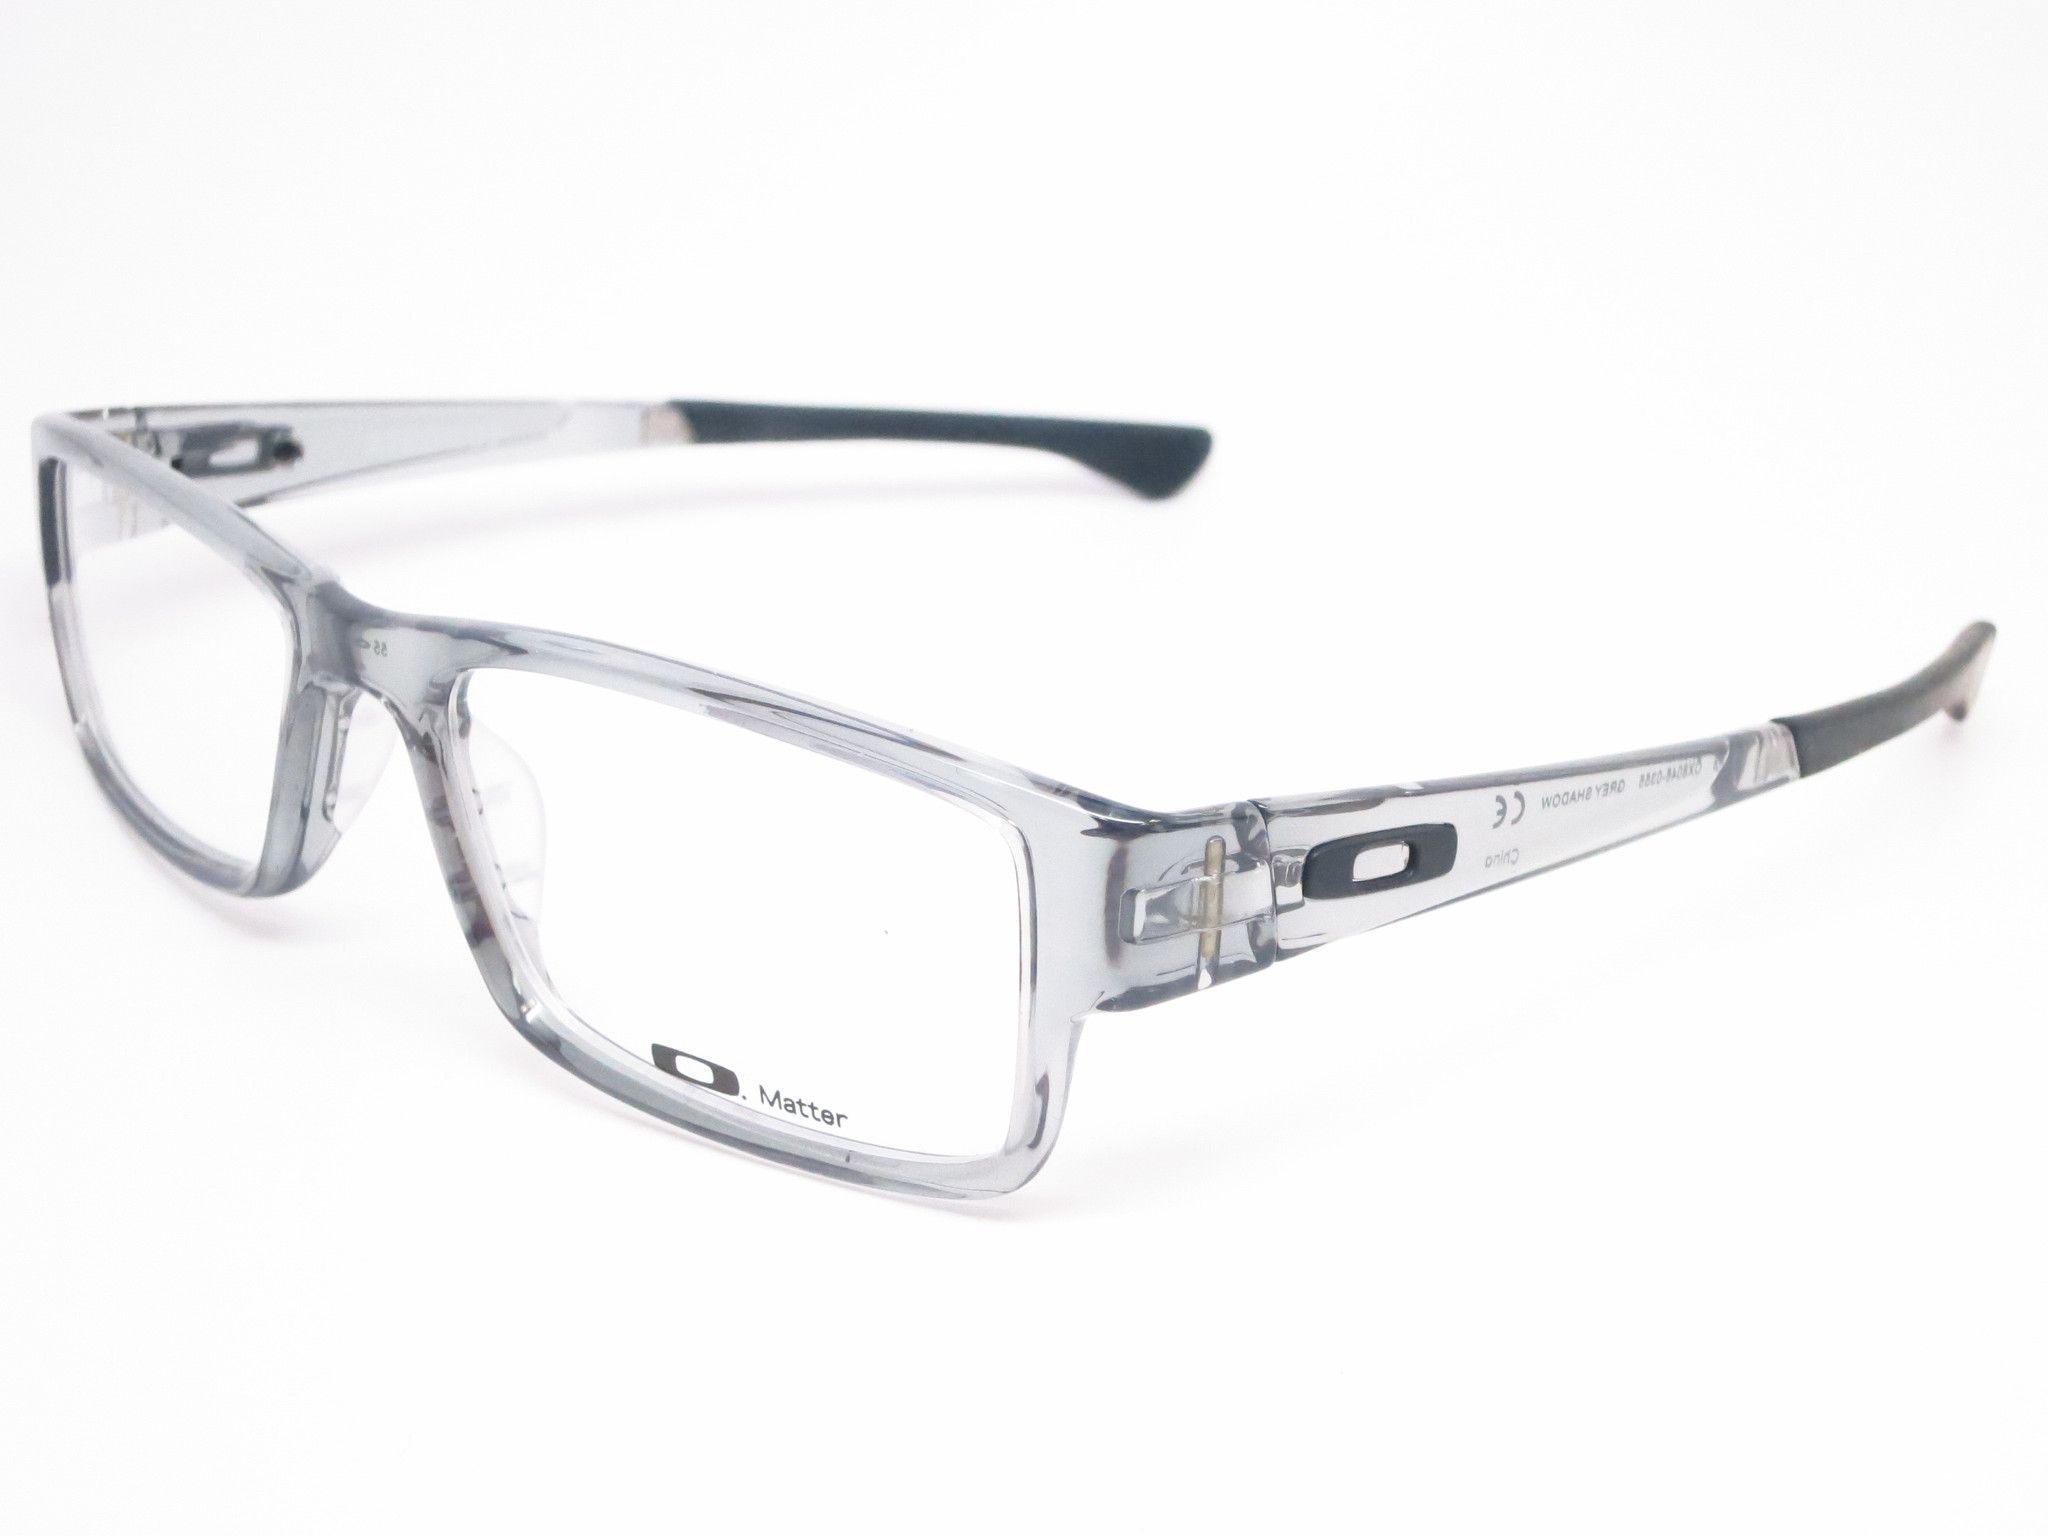 Oakley Airdrop Ox8046 0355 Grey Shadow Eyeglasses Grey Shadow Oakley Eyeglasses